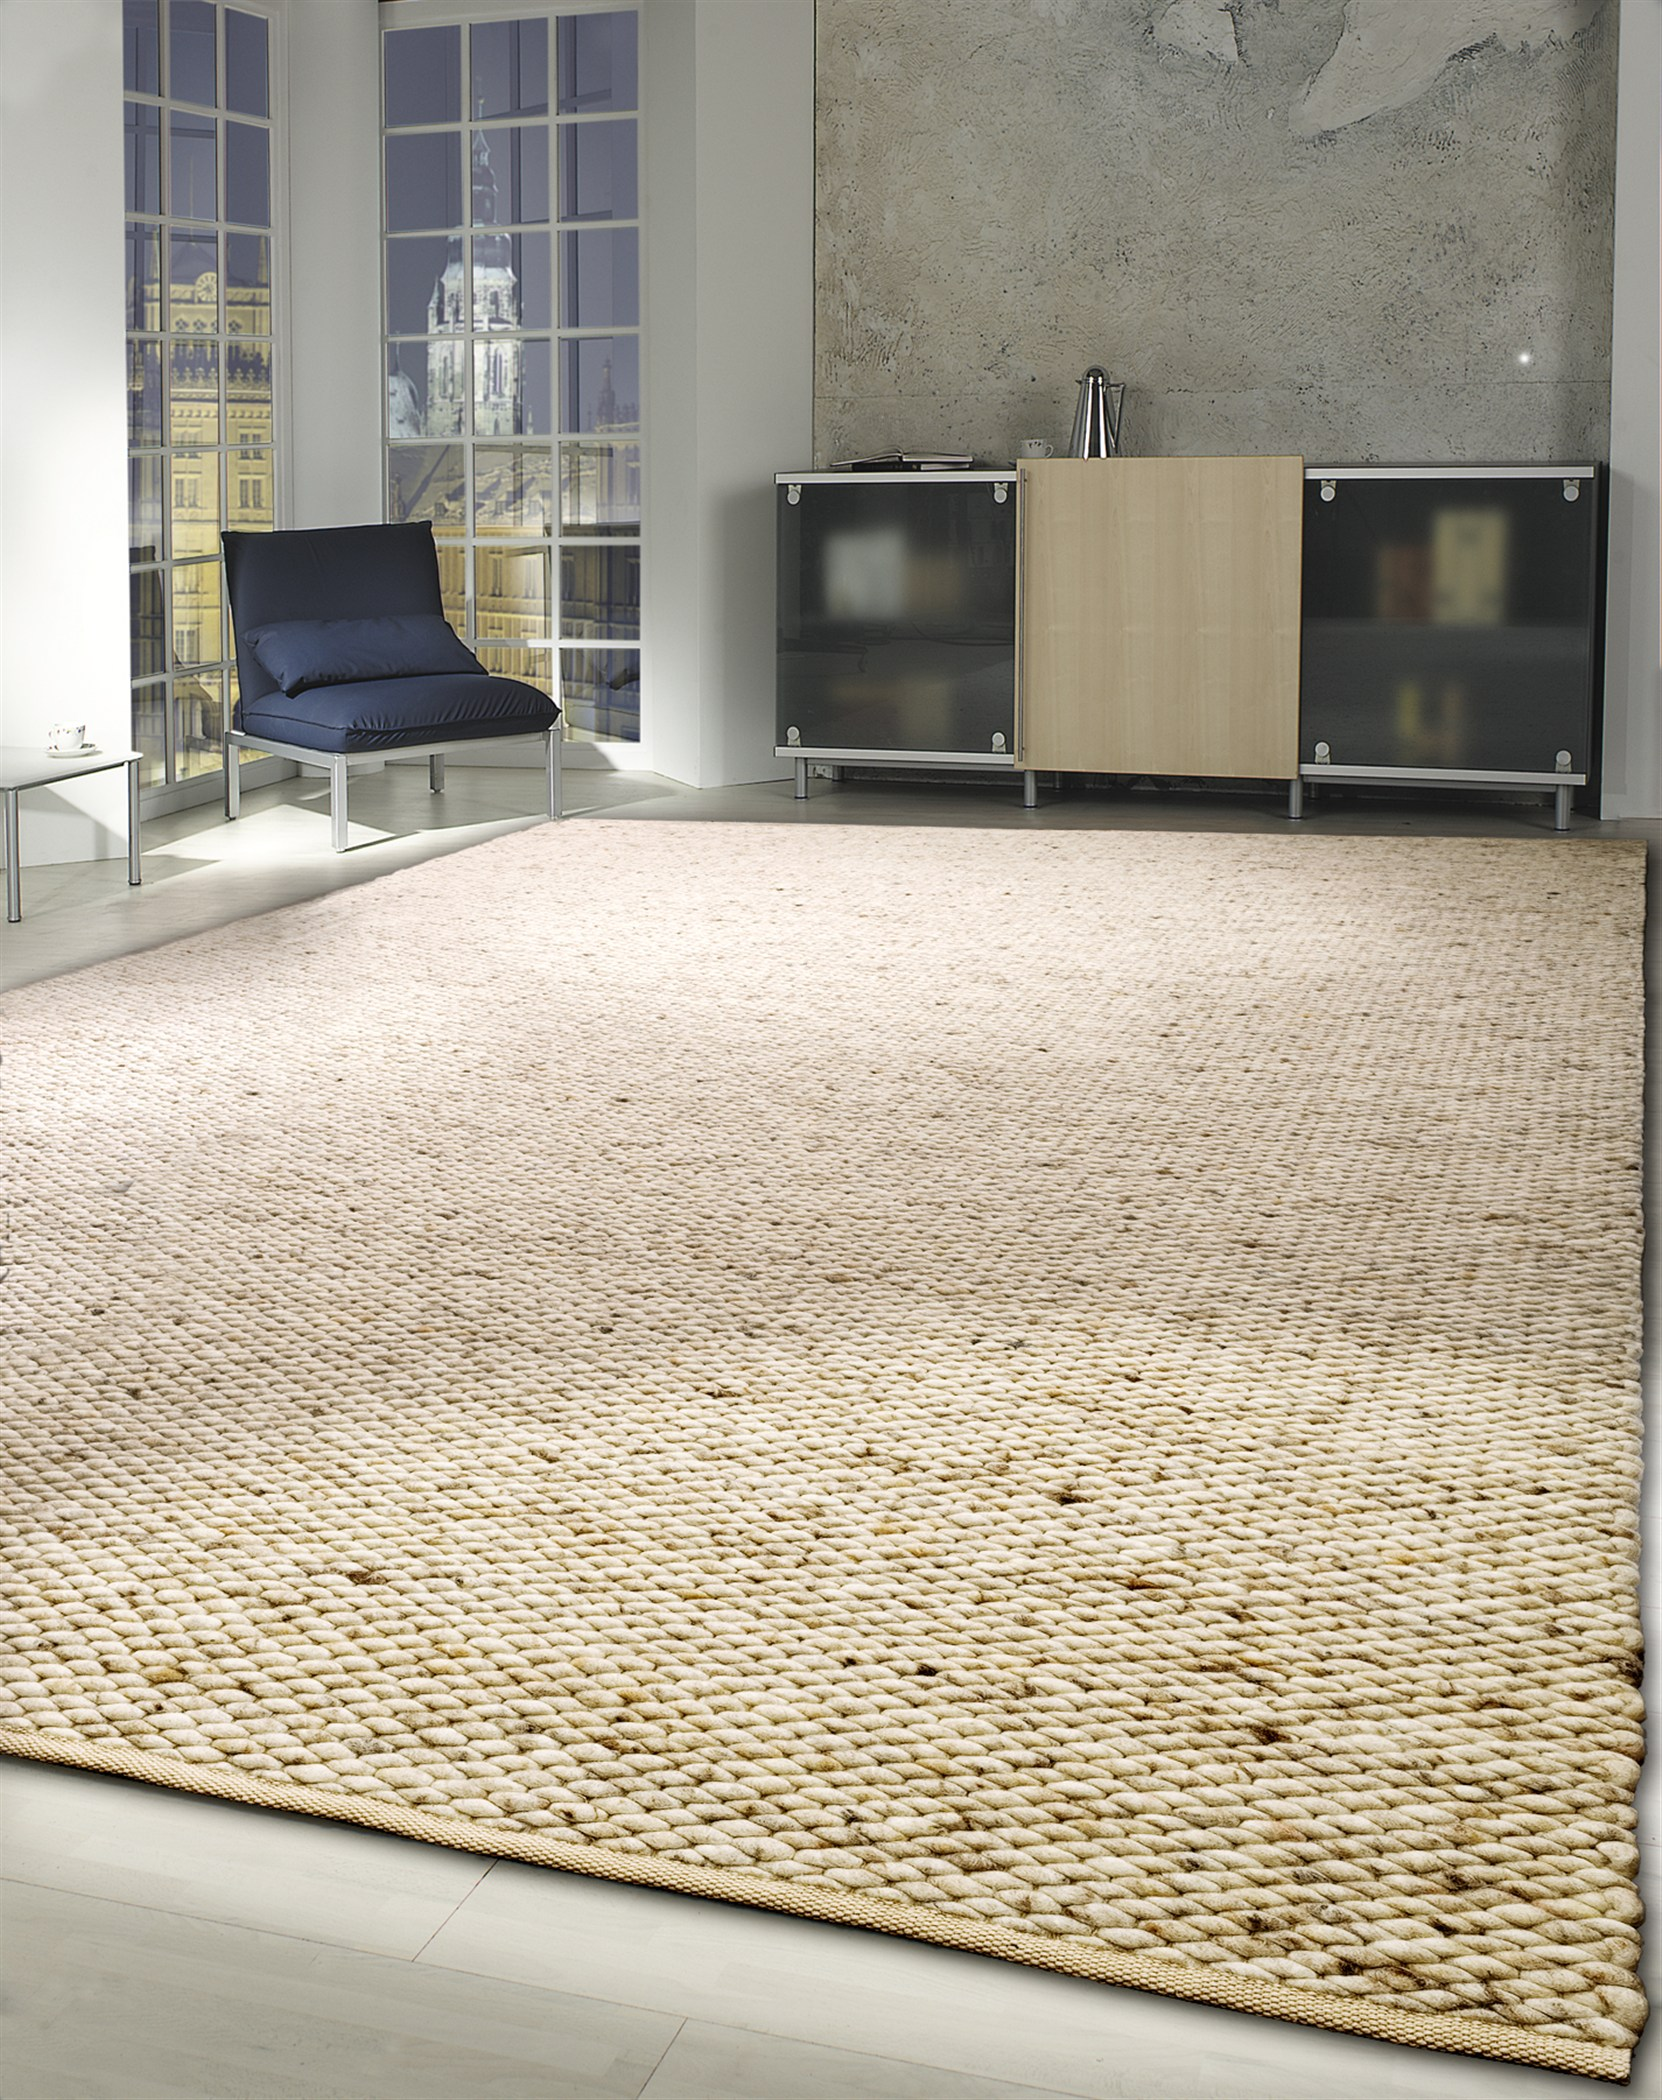 Modern, contemporary home with a light-brown rug woven with New Zealand Felted Wool.